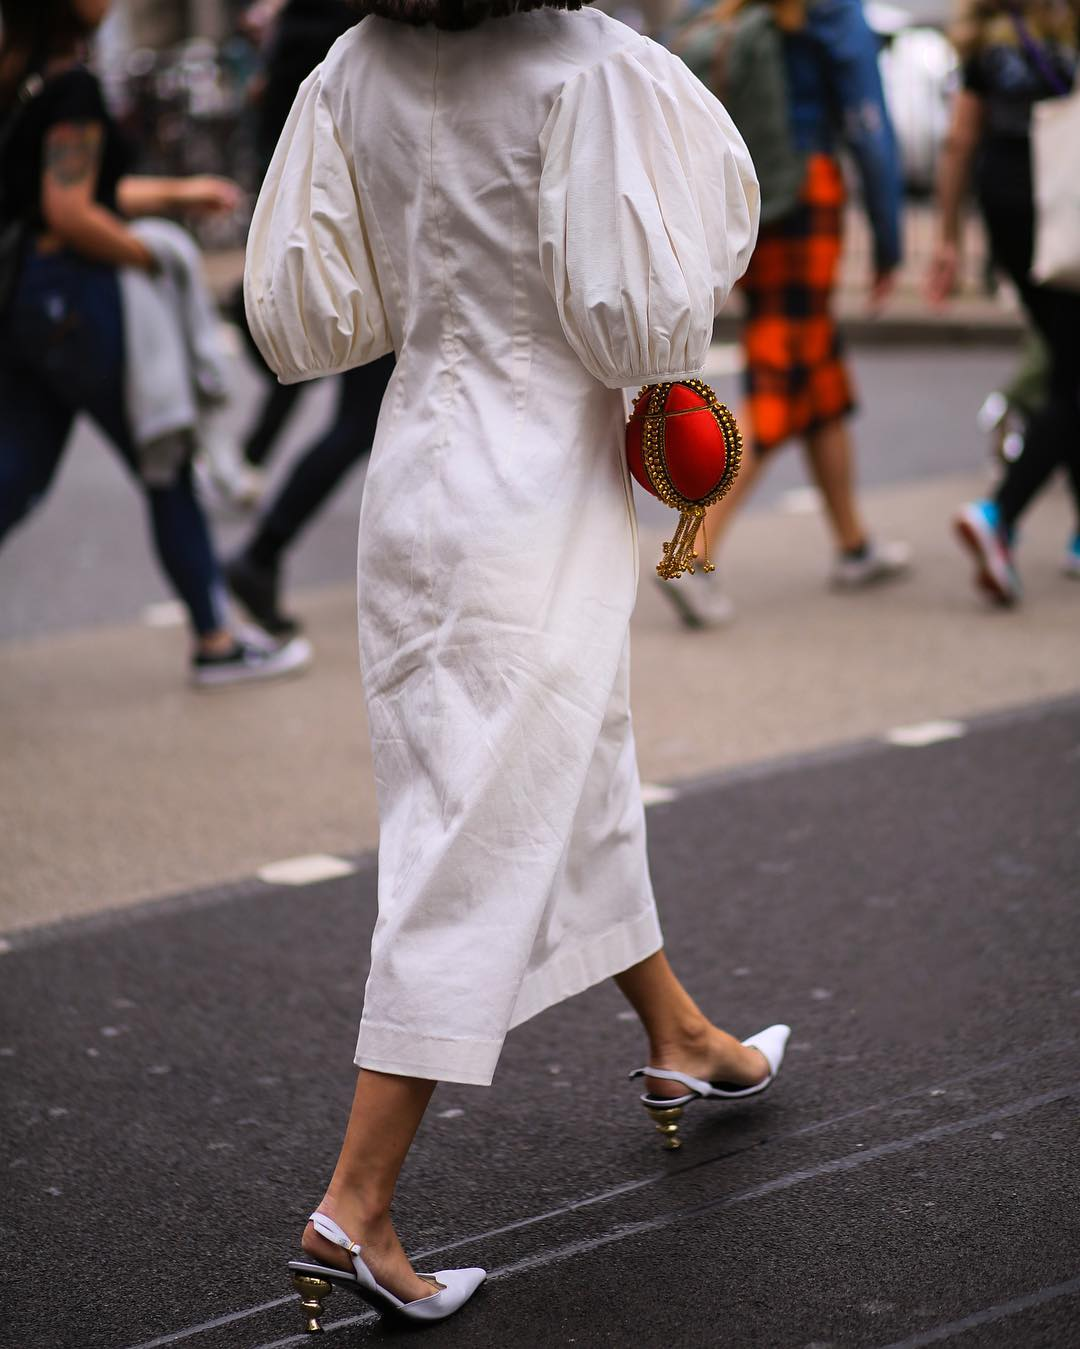 Anisa Sojka spotted at London Fashion Week wearing the fiery Red Babi Bracelet Clutch Bag. Photographed by David Nyanzi. Mae Cassidy Gold clutch bag street style LFW clutch bag red gold handbag occasionwear streetstyle with a white balloon sleeve EDIT dress and white Yuul Yie leather sling back